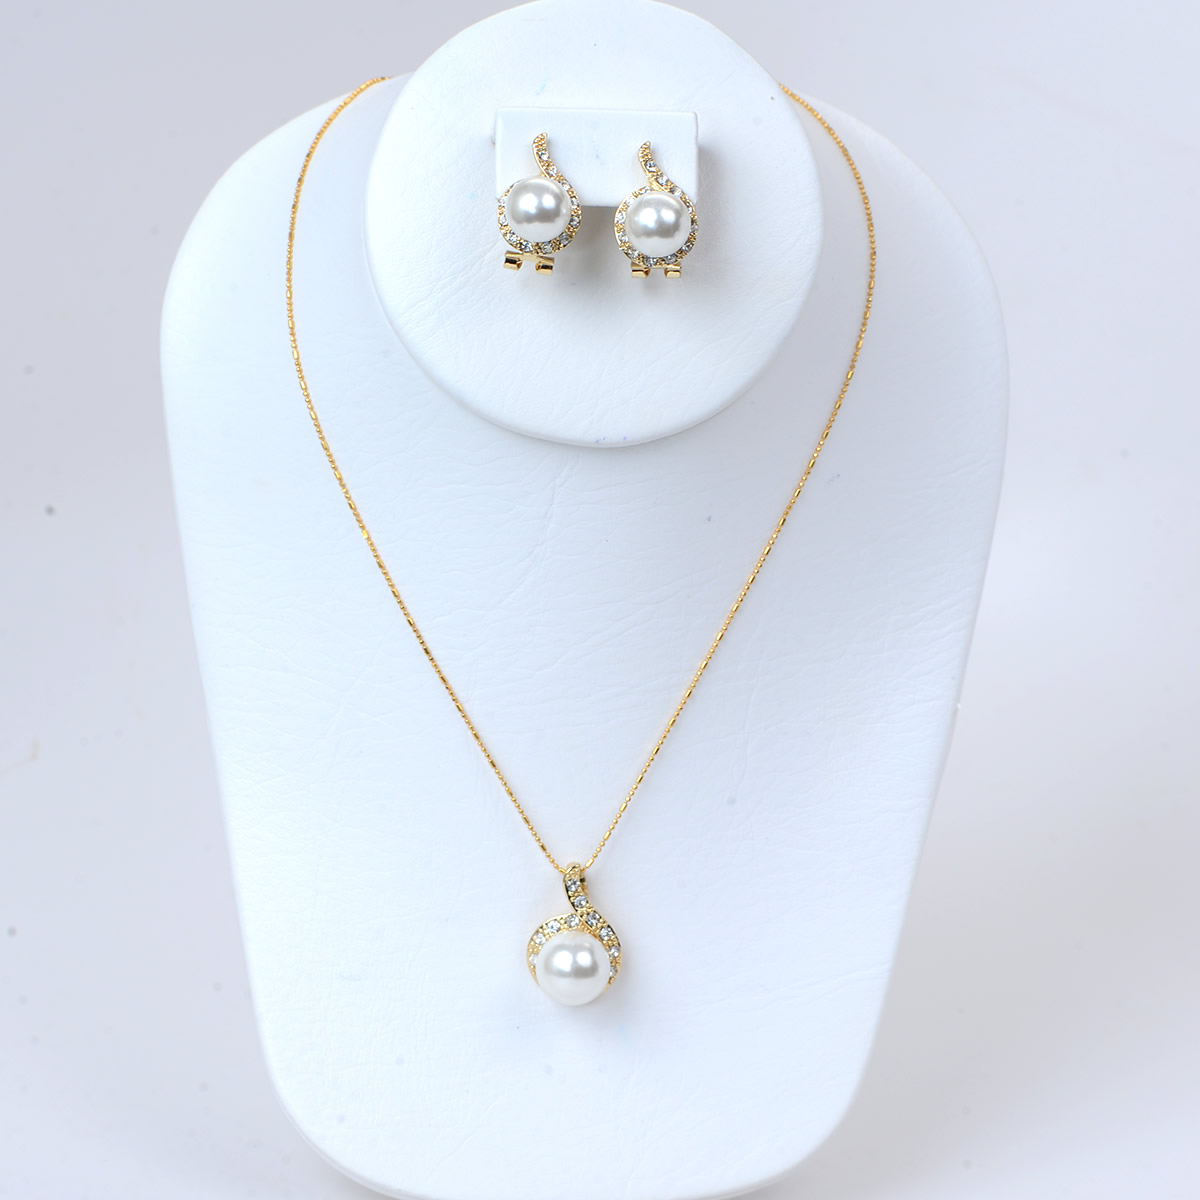 Brilliant Pearlesque Necklace and Earring Set